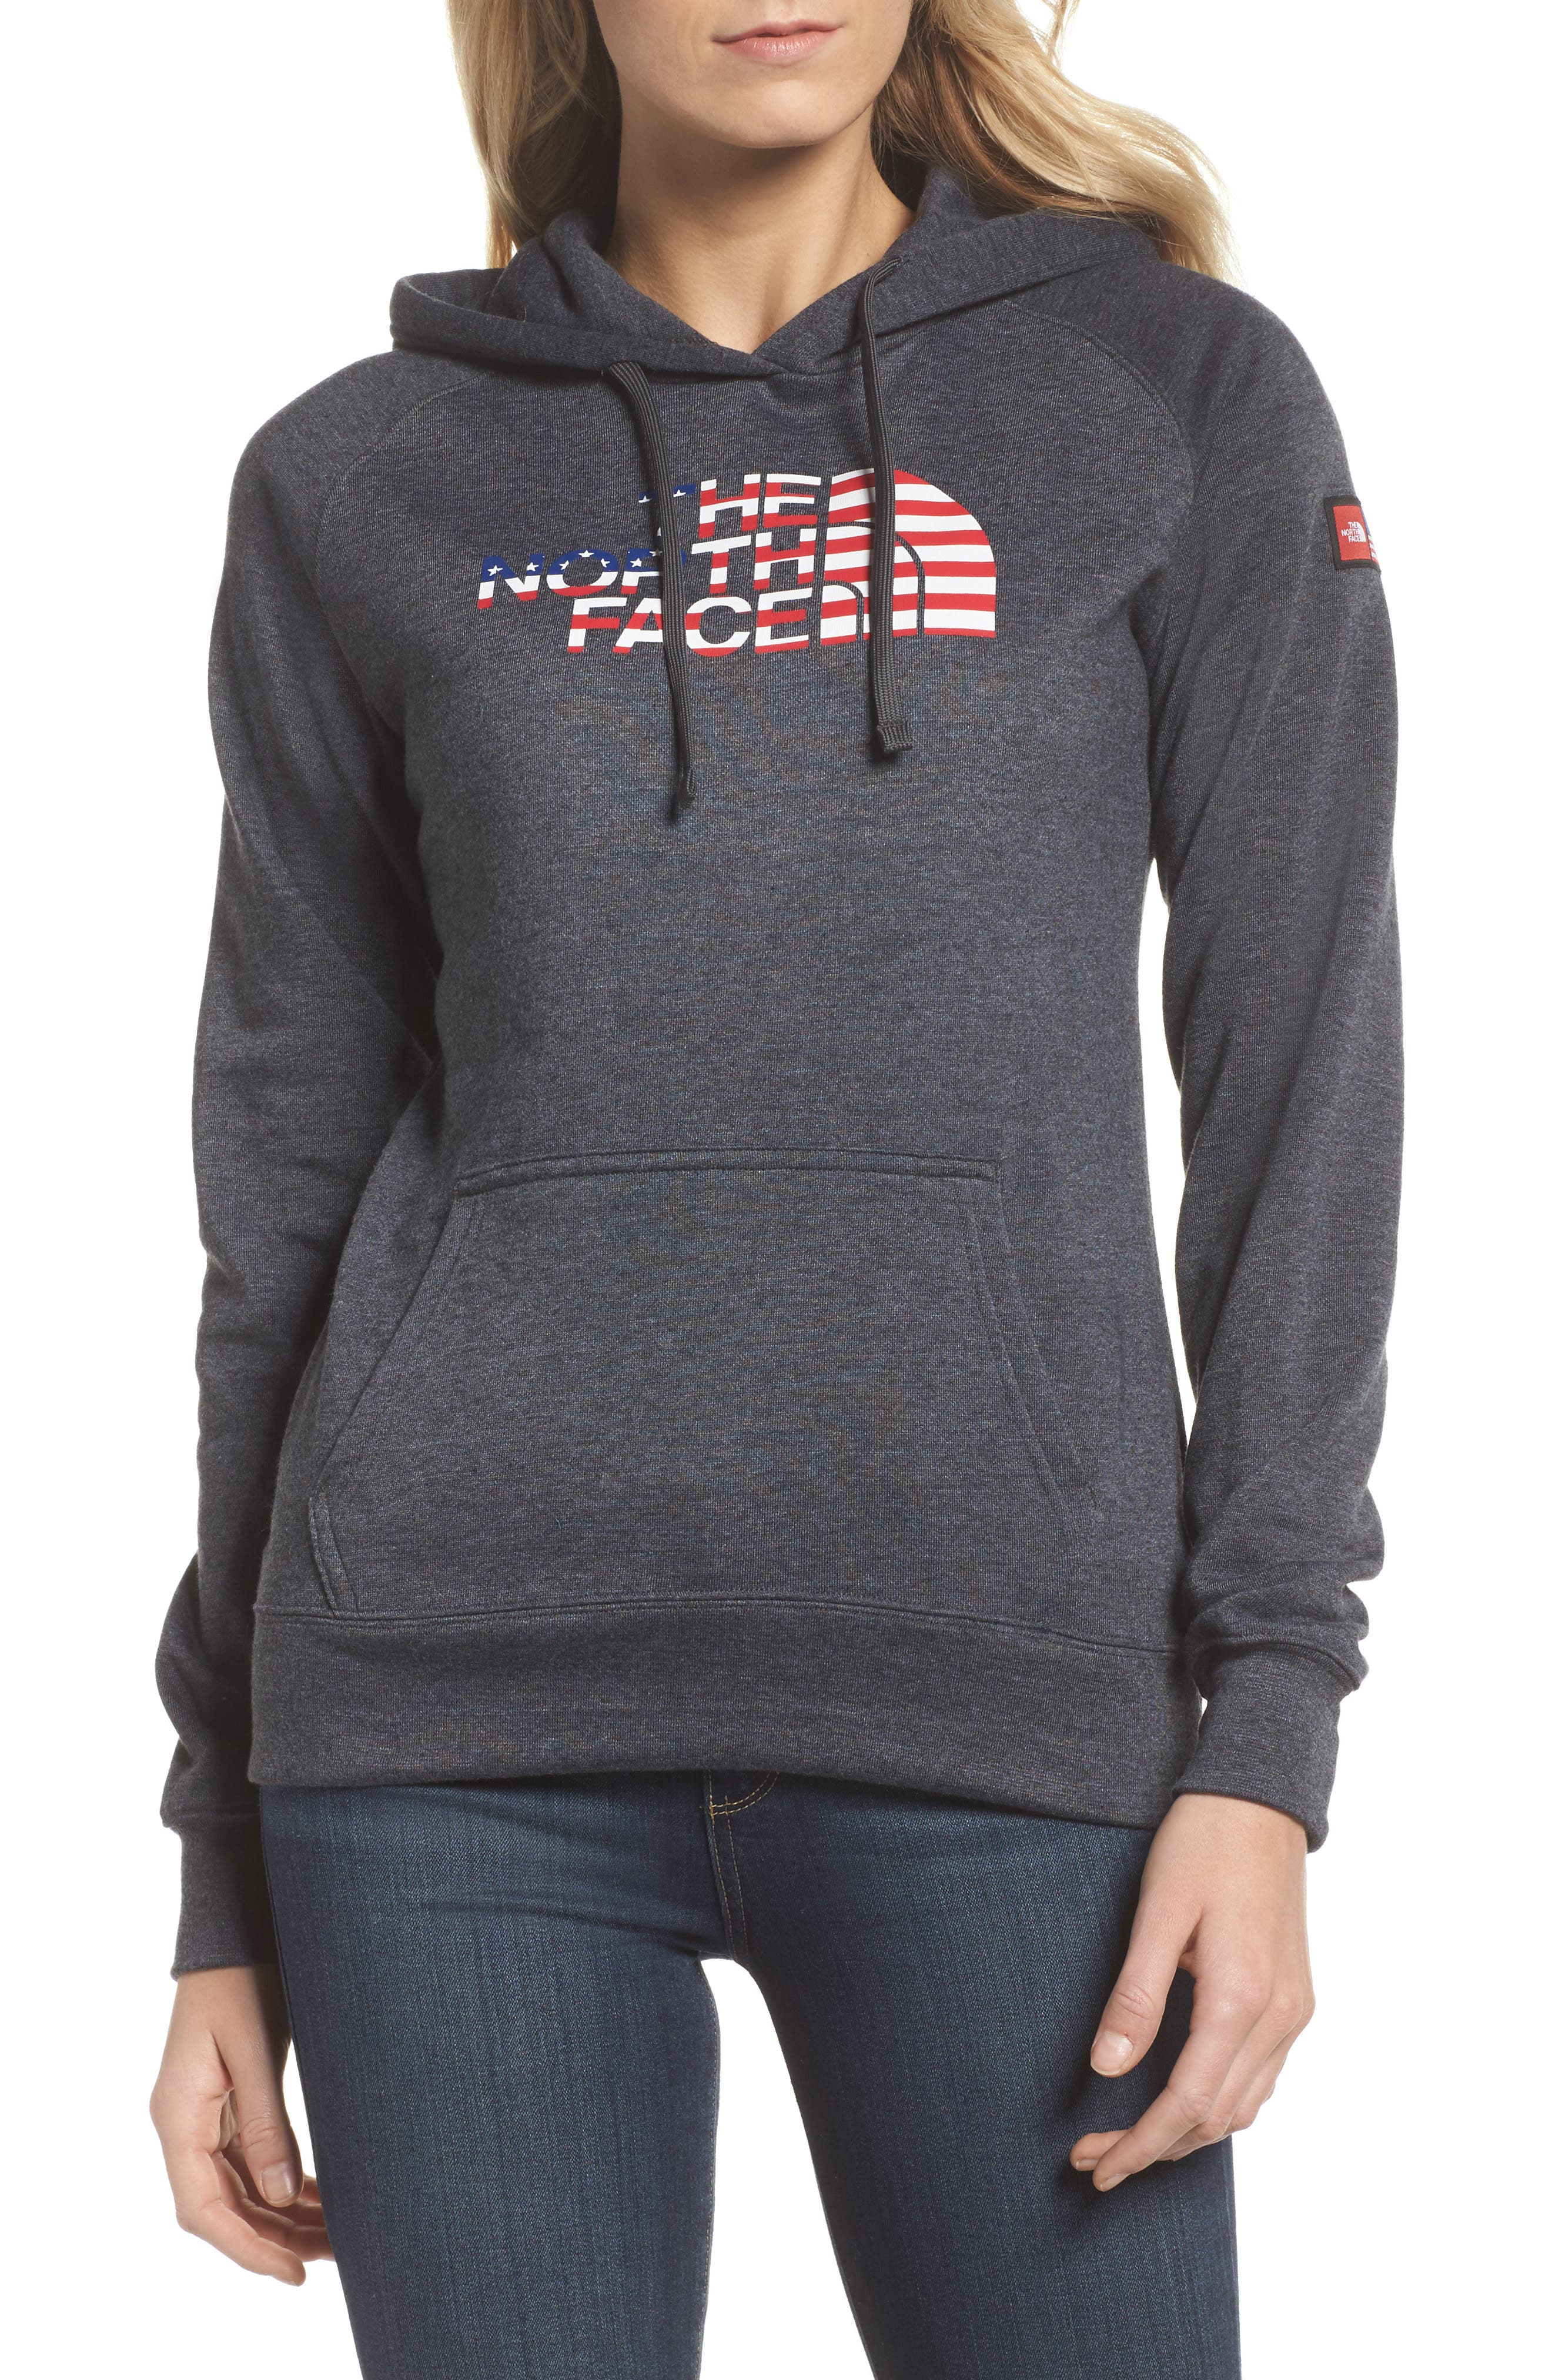 Main Image - The North Face International Collection USA Pullover Hoodie